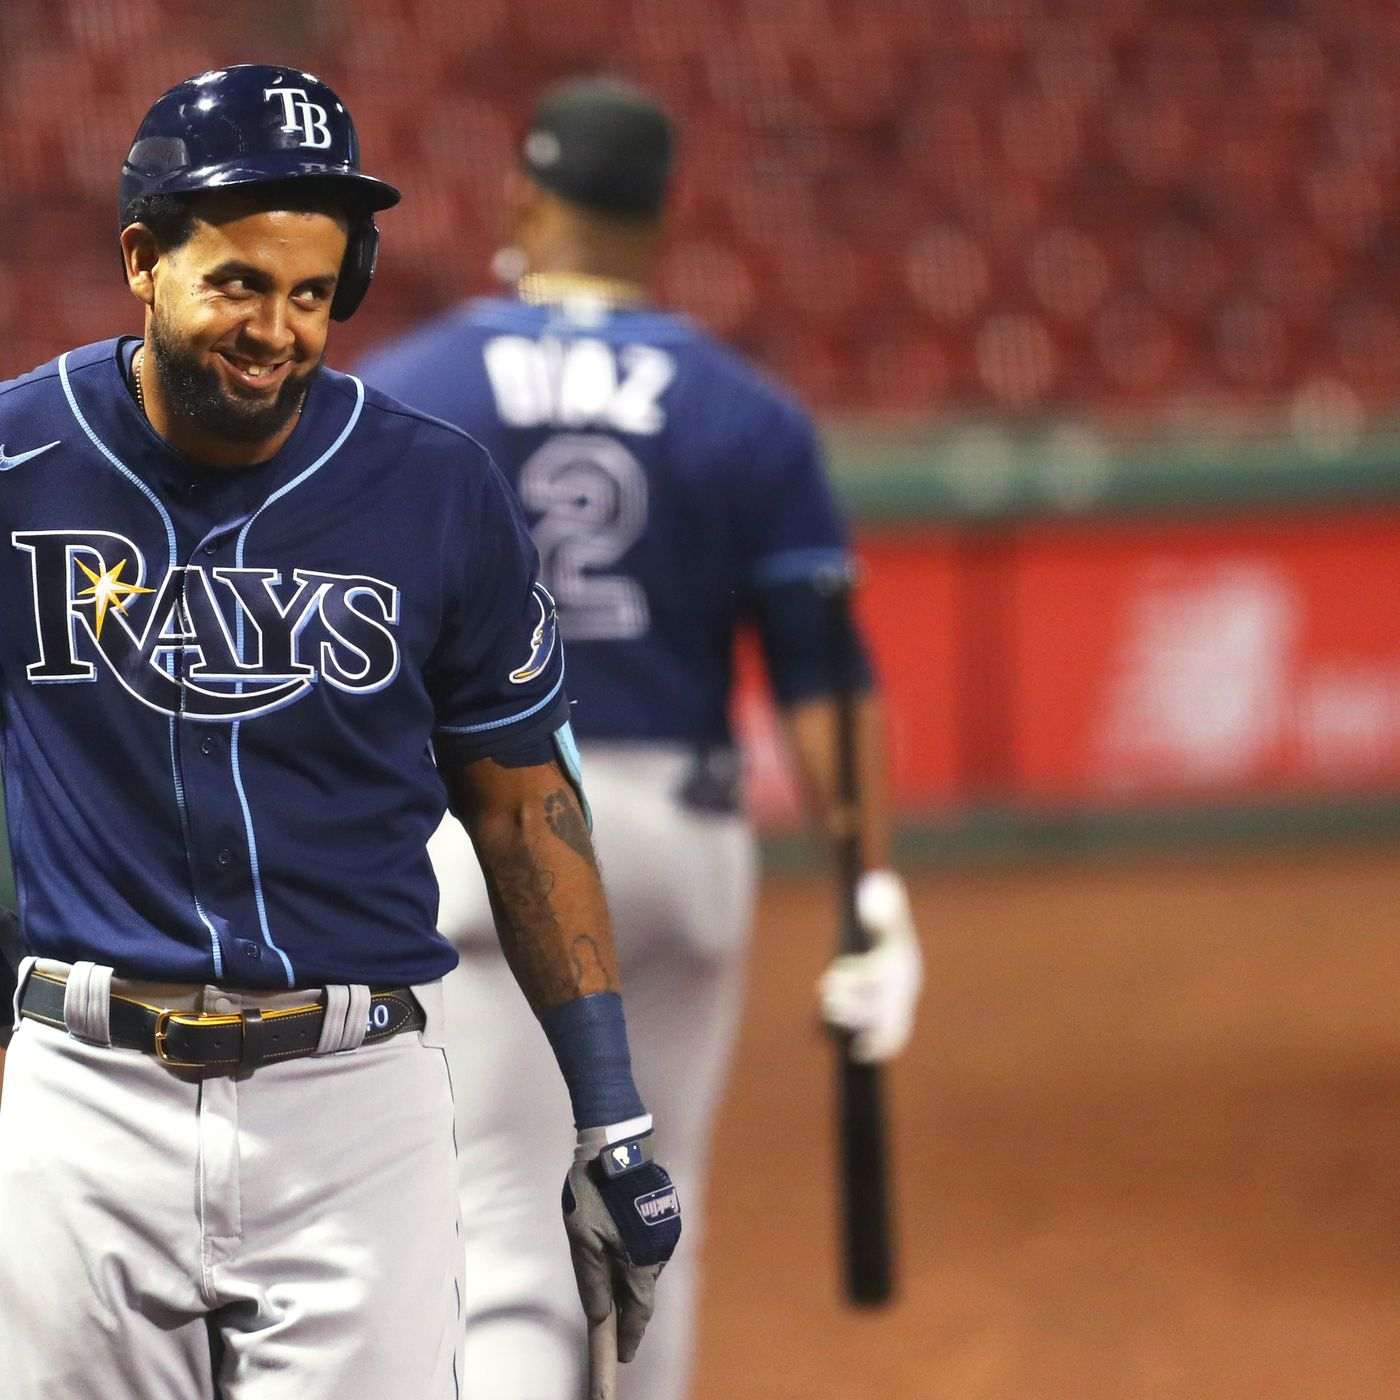 rays trade dh jose martinez to cubs promote randy arozarena draysbay rays trade dh jose martinez to cubs